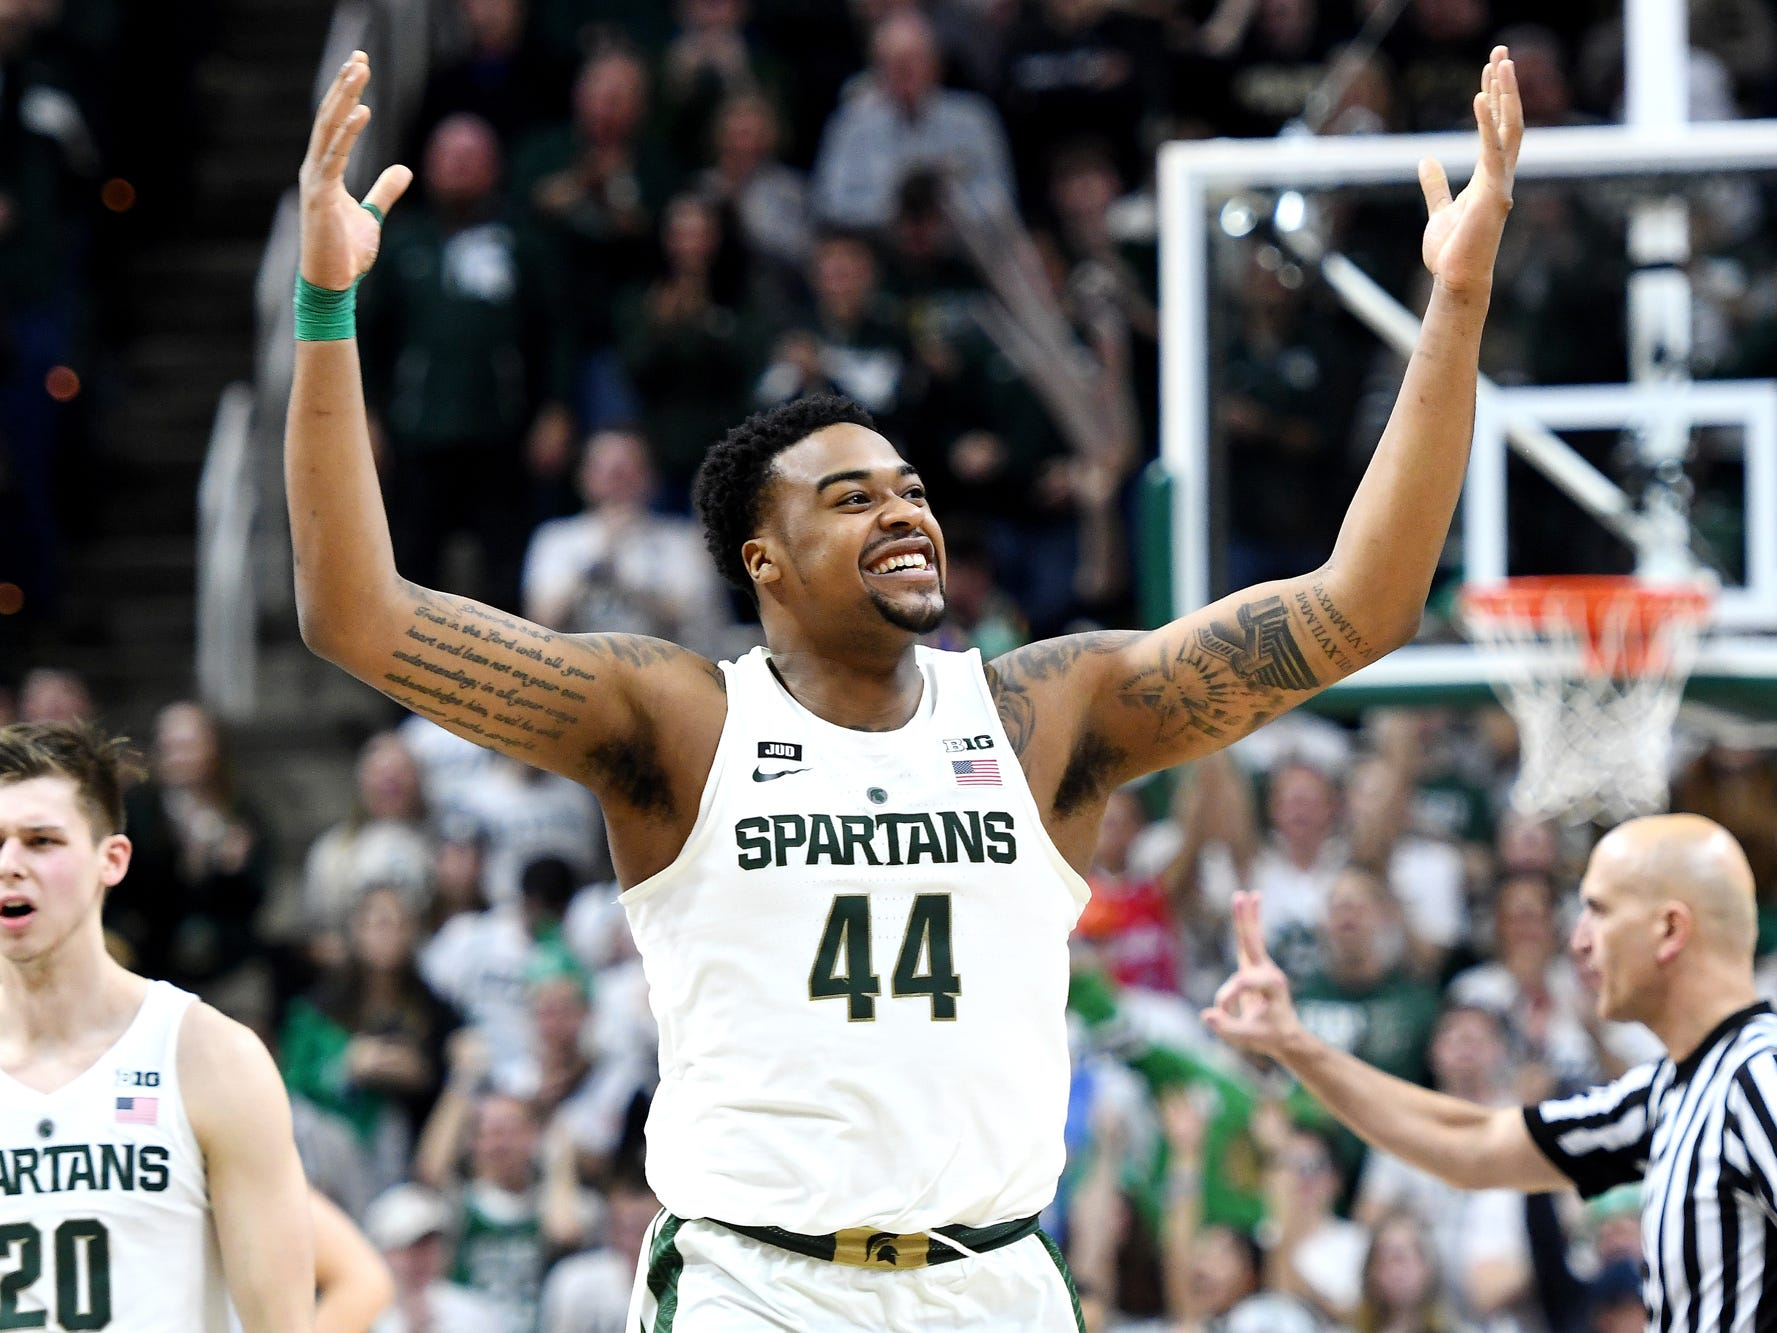 Michigan State's Nick Ward celebrates during the second half on Saturday, Feb. 10, 2018, at the Breslin Center in East Lansing. The Spartans beat Purdue 68-65.